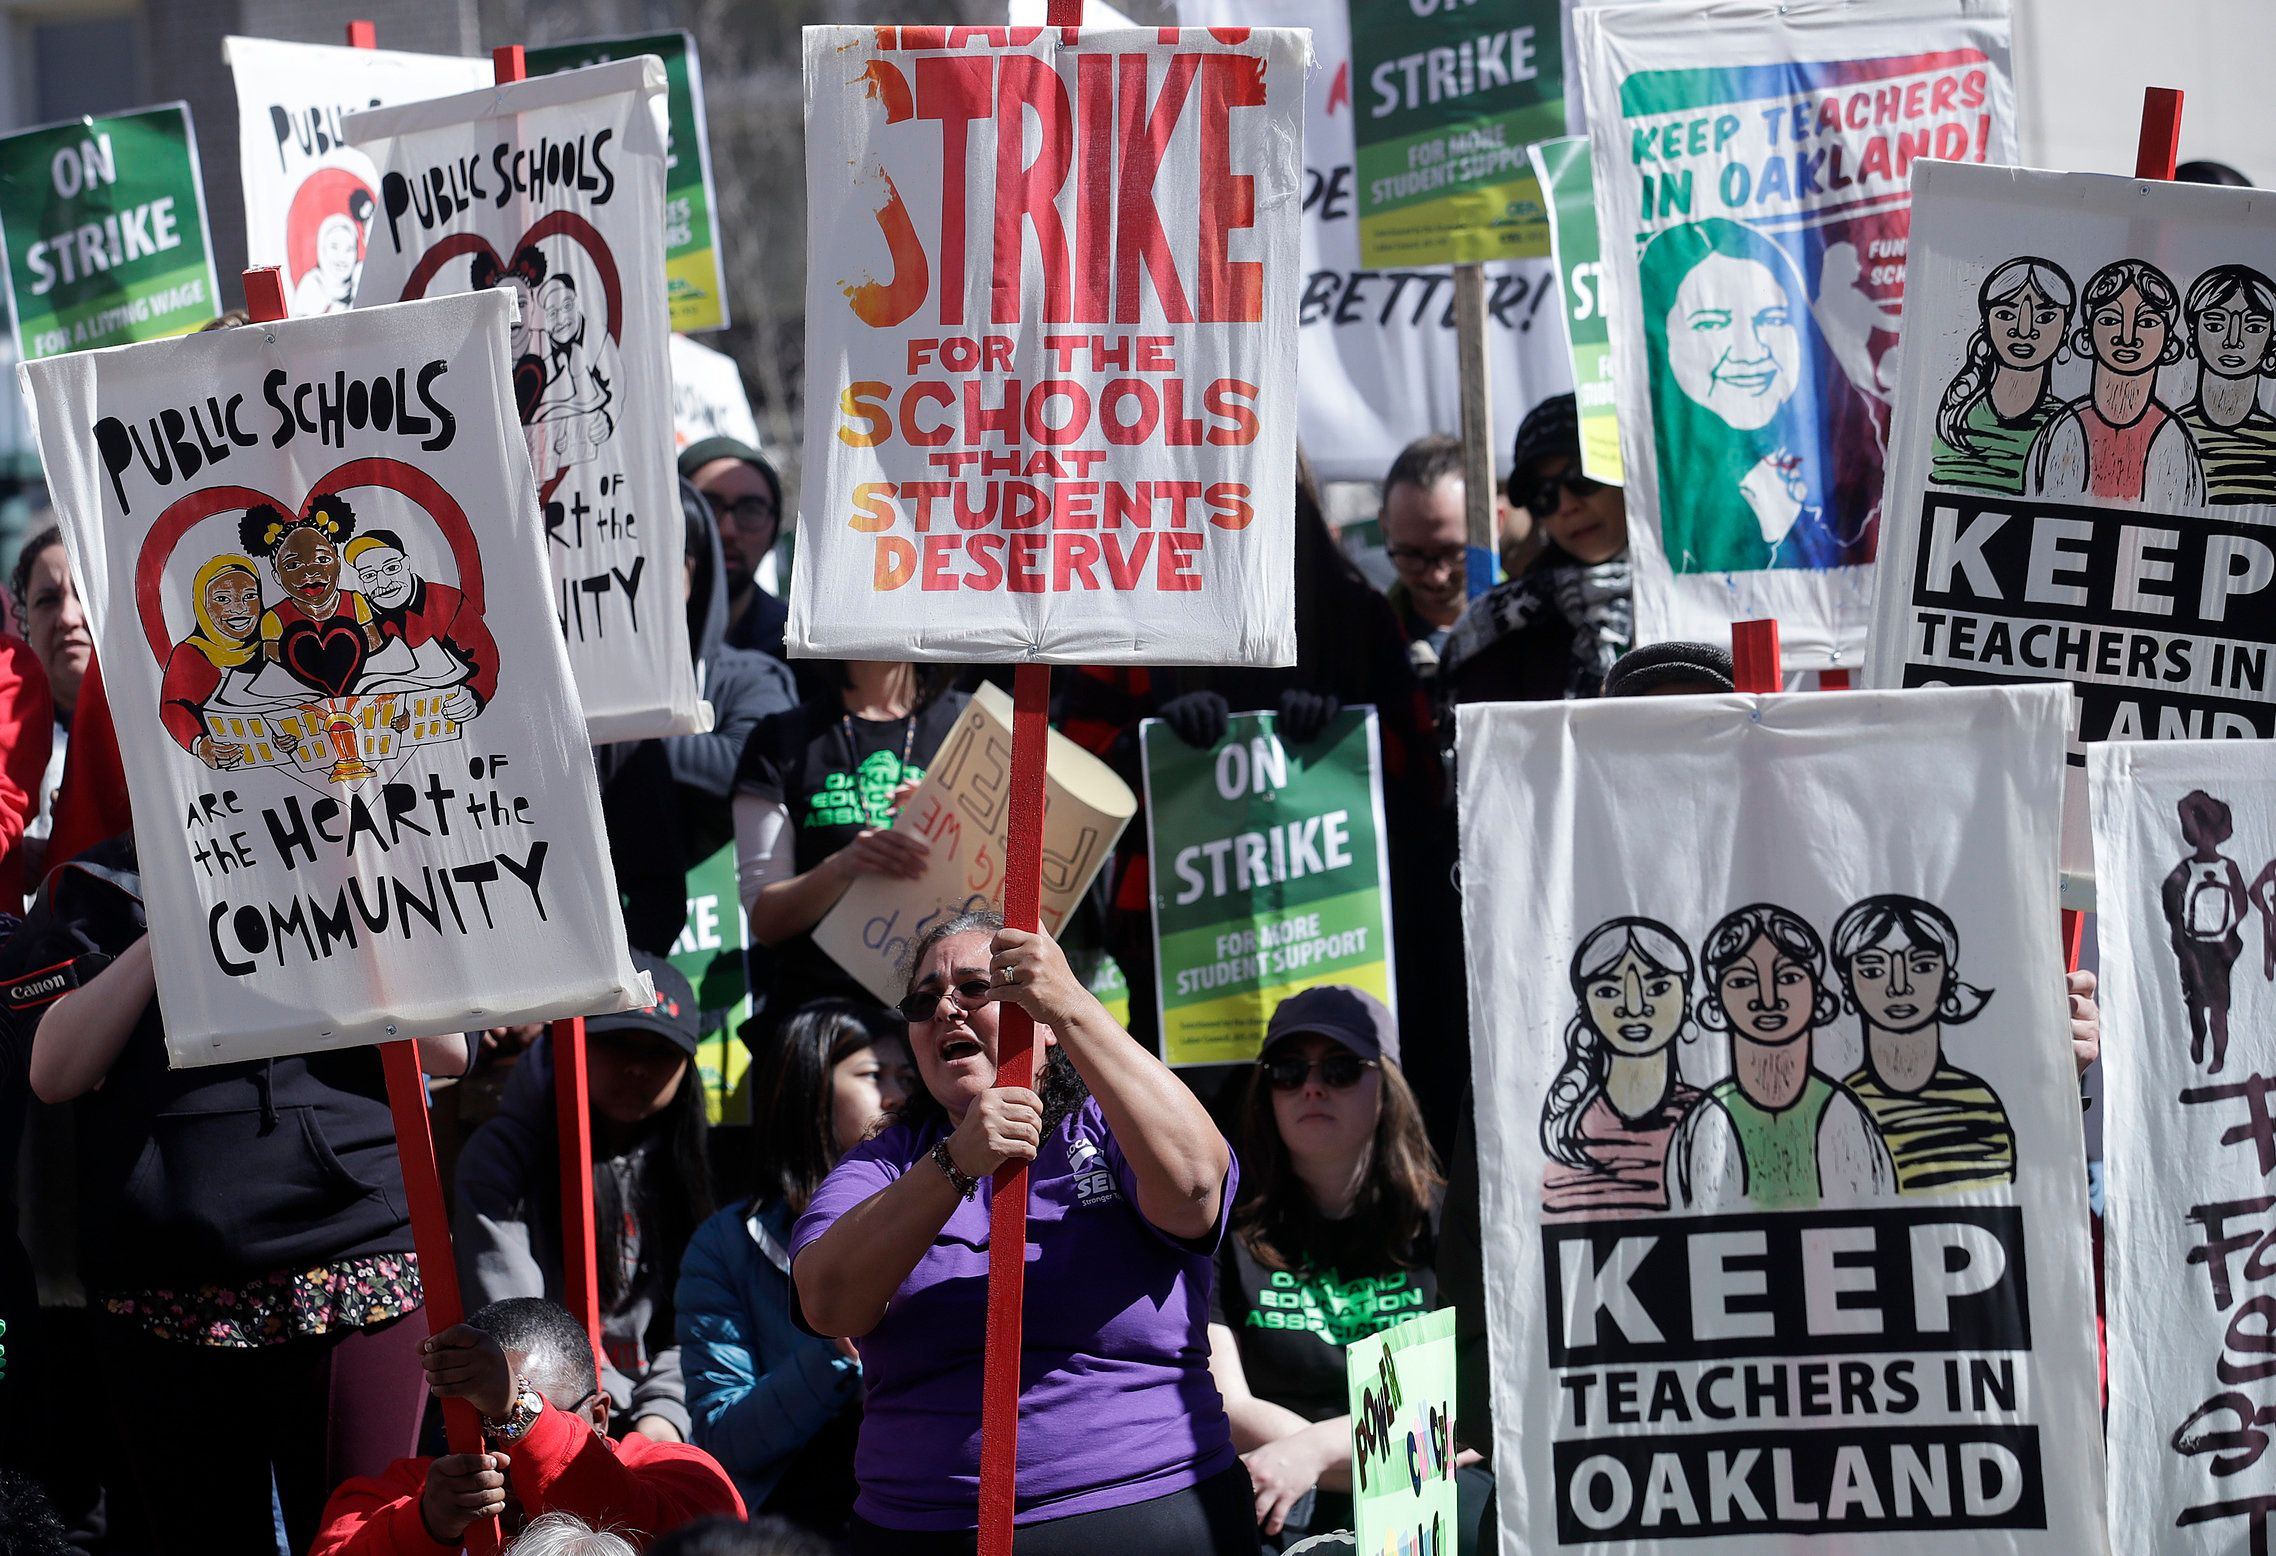 Teachers, students and supporters rally at Frank Ogawa Plaza in front of City Hall in Oakland, Calif., Thursday, Feb. 21, 2019. Teachers in Oakland, California, went on strike Thursday in the country's latest walkout by educators over classroom conditions and pay. (AP Photo/Jeff Chiu)